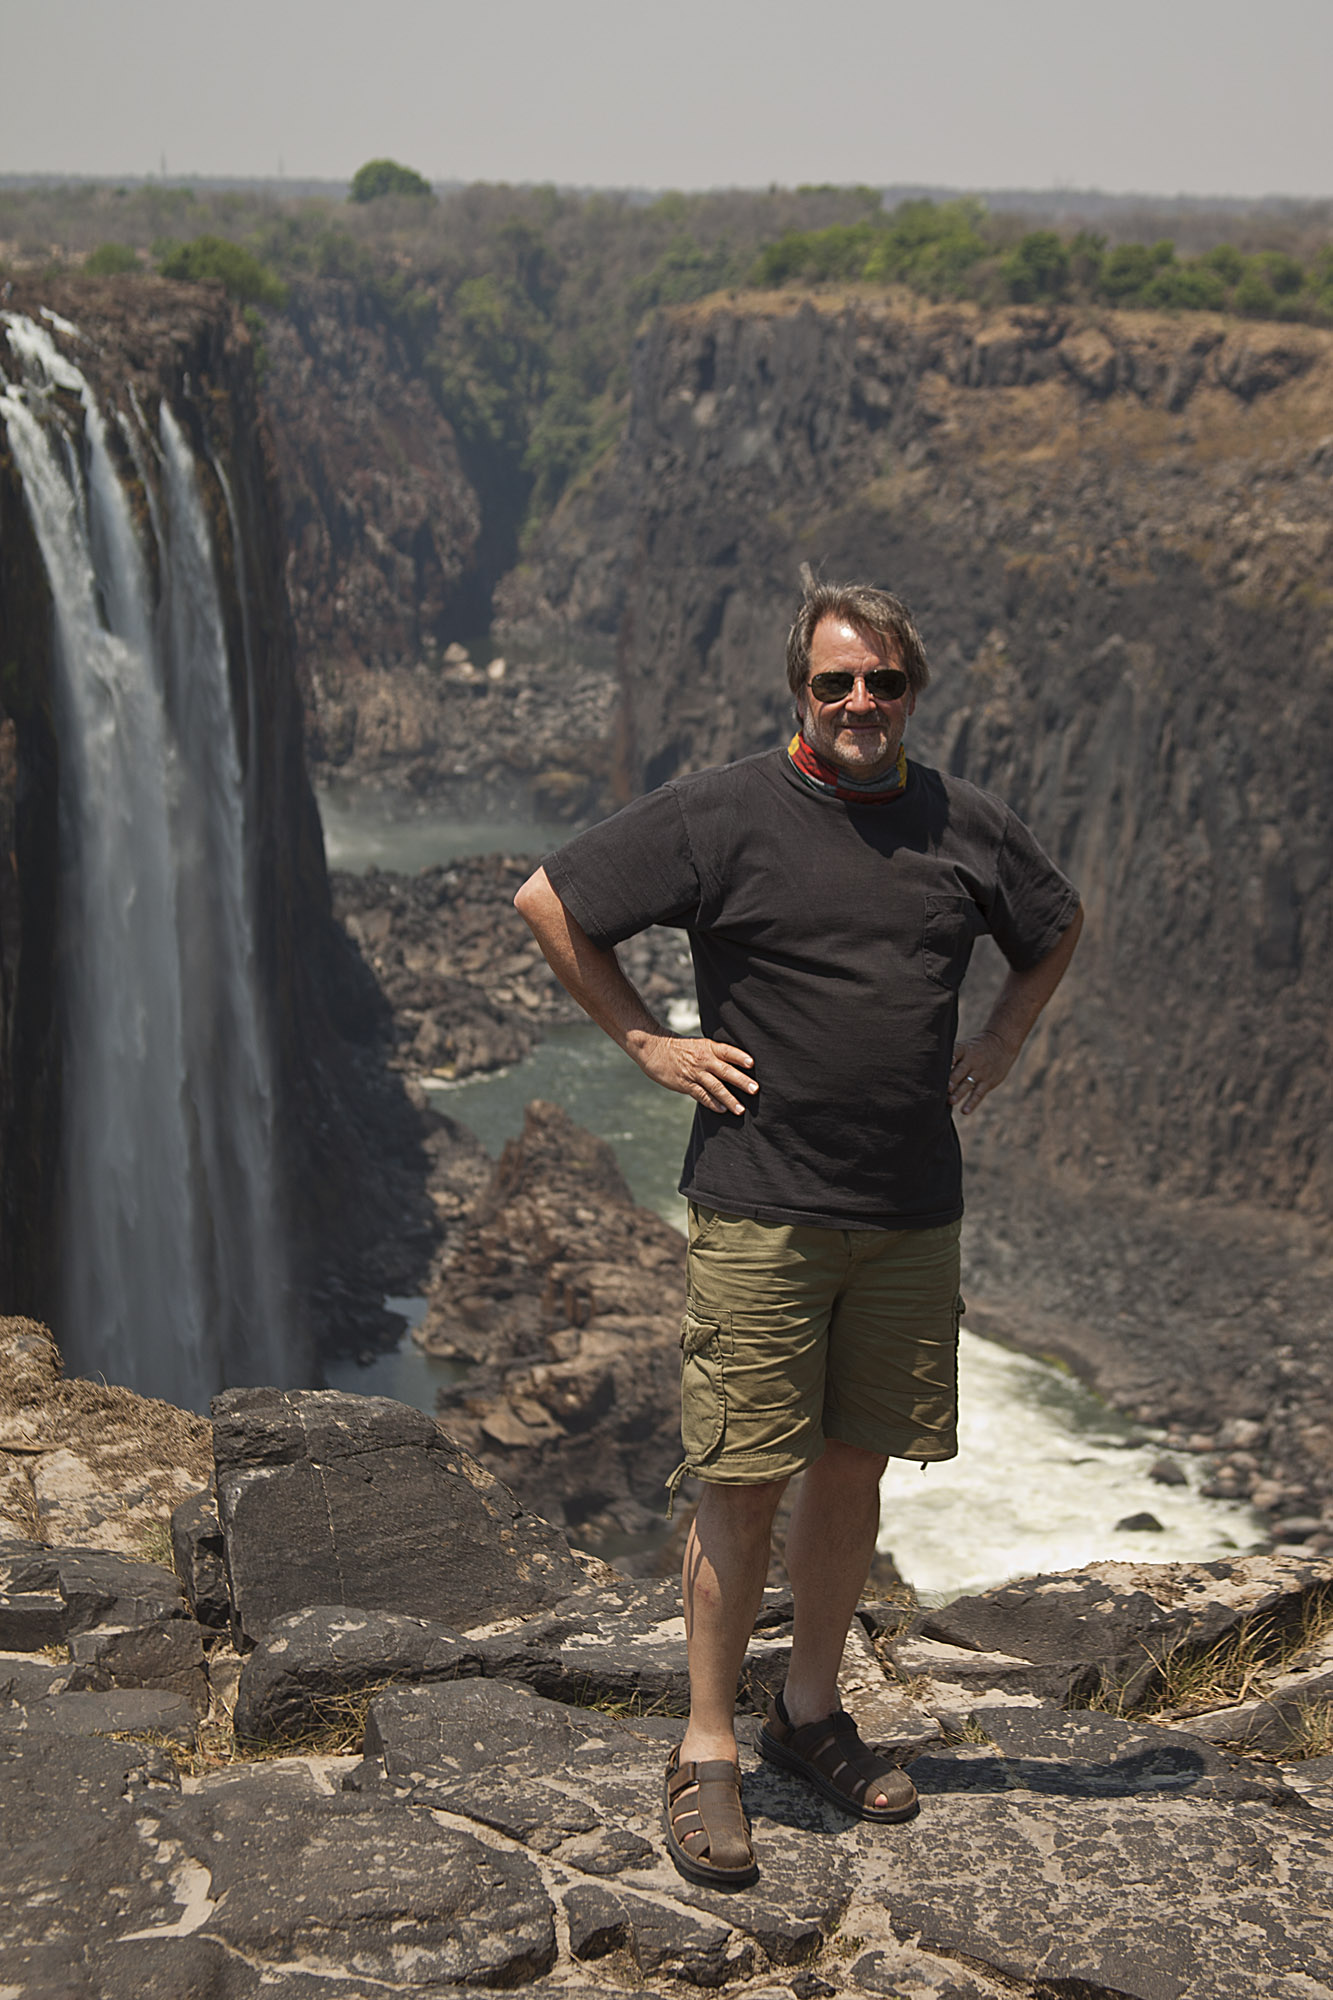 Yours truly at the edge of the falls